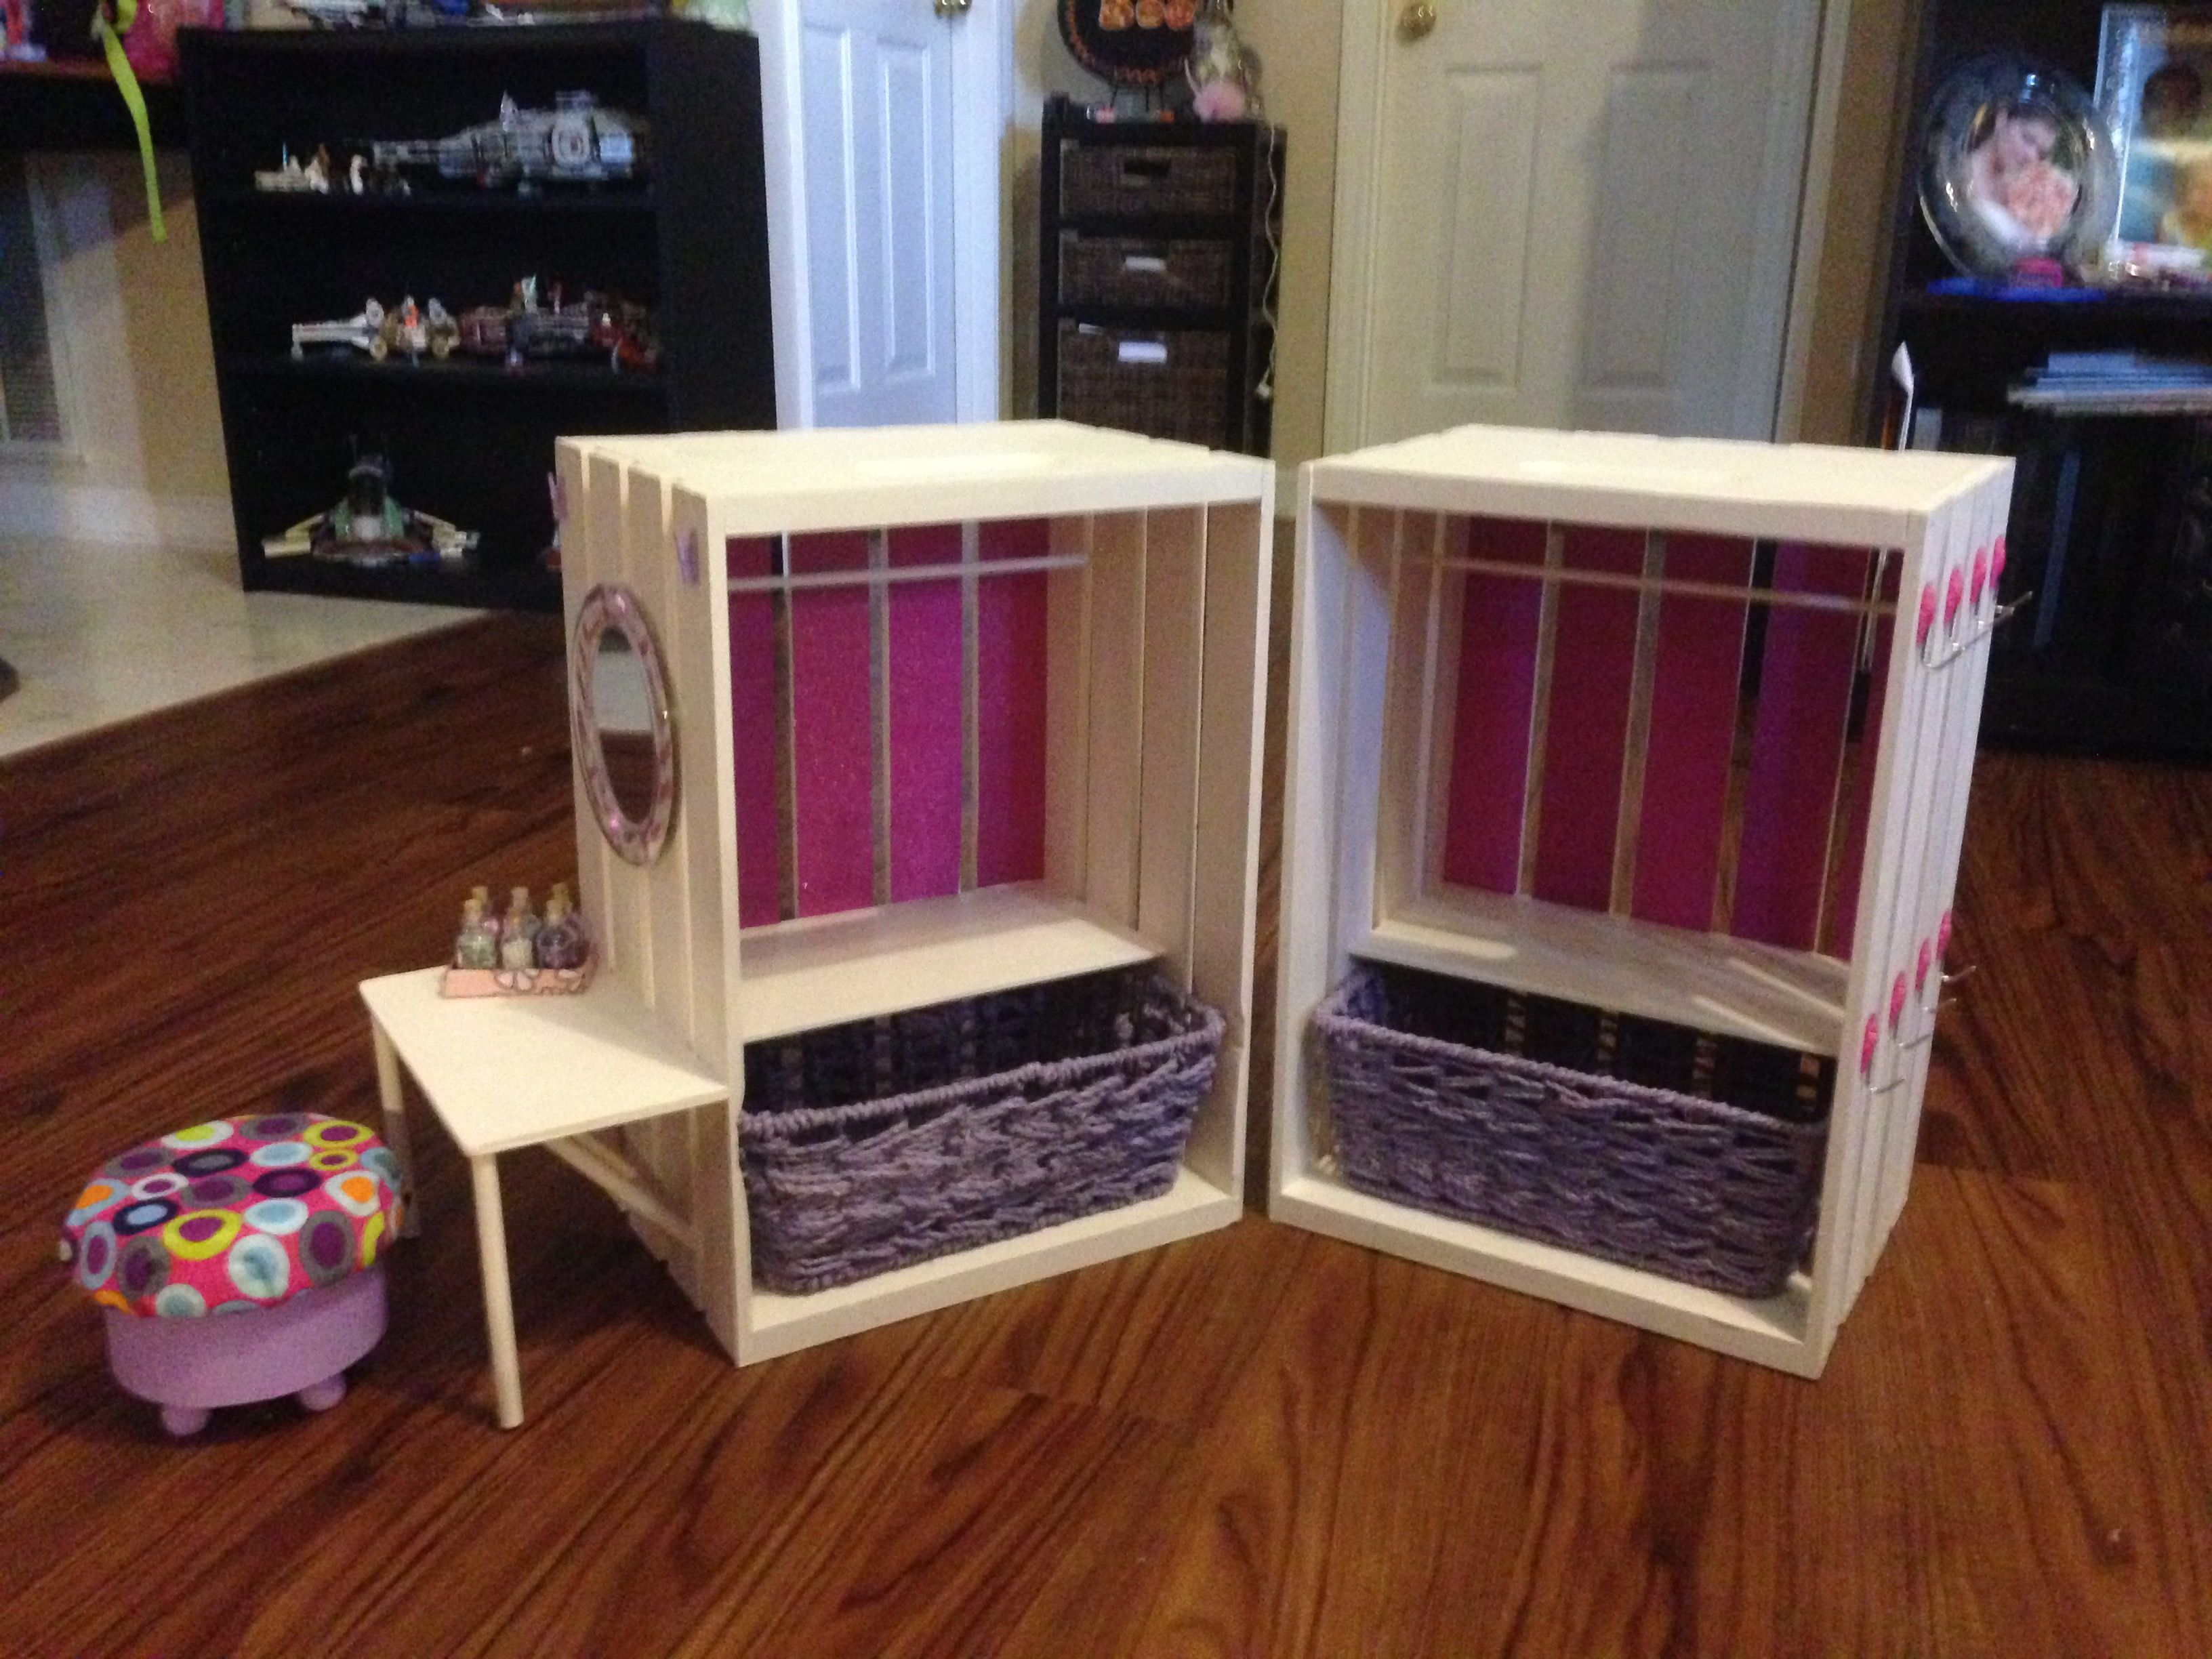 Closets With Side Vanity Made From Wooden Crates American Girl Doll Furniture Diy Doll Closet American Girl Doll Room